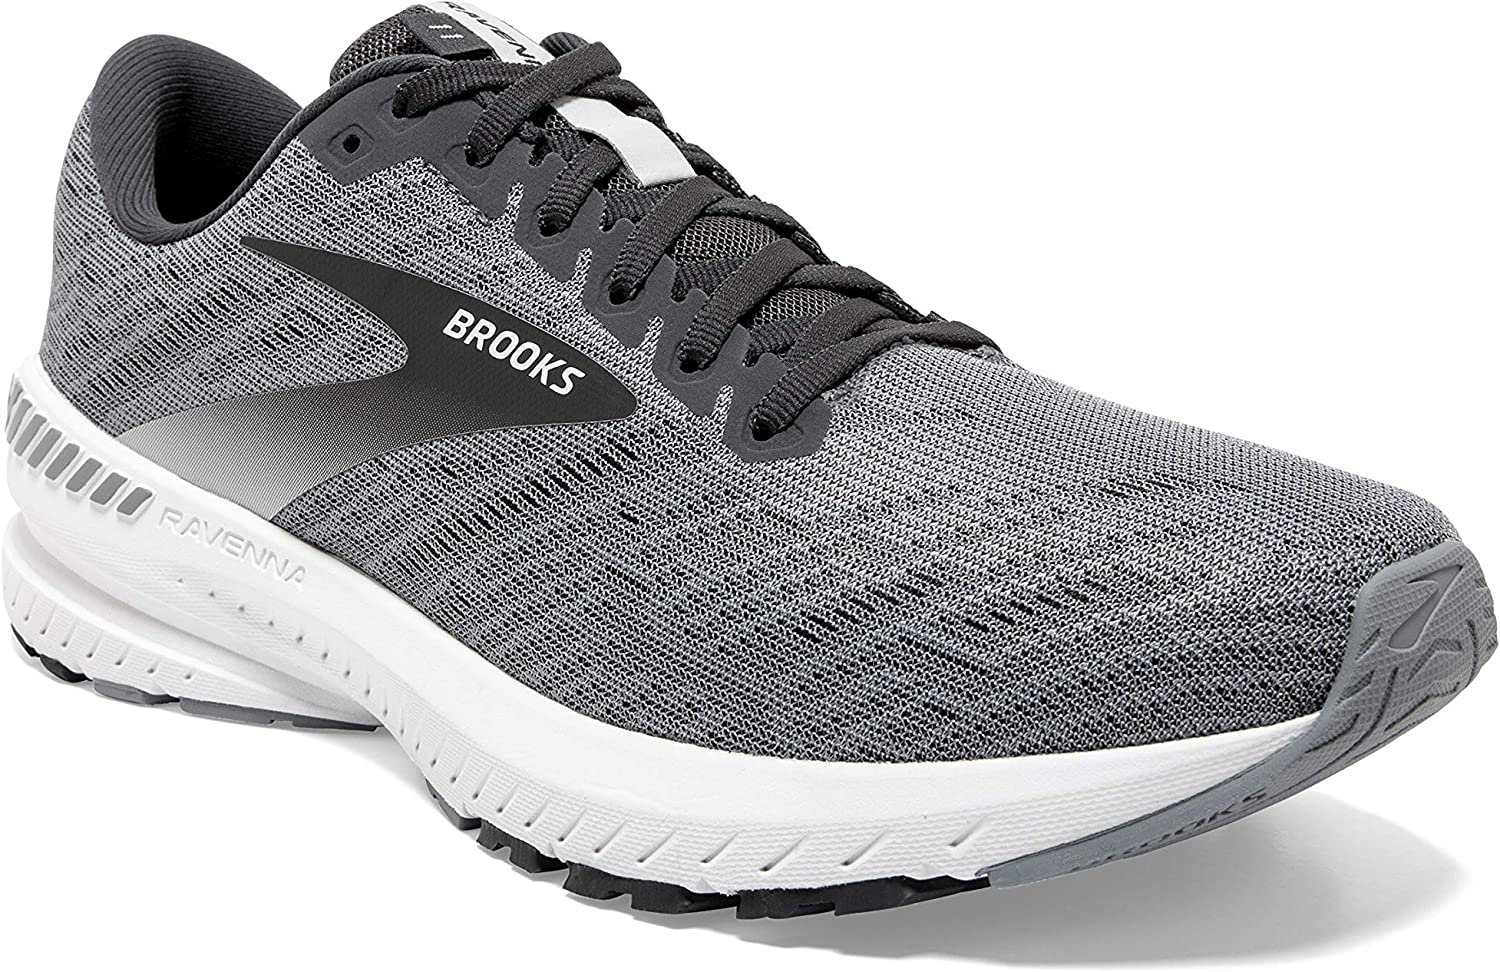 2021 excellence autumn and winter new Brooks Men's Stroke 0 Running Shoe